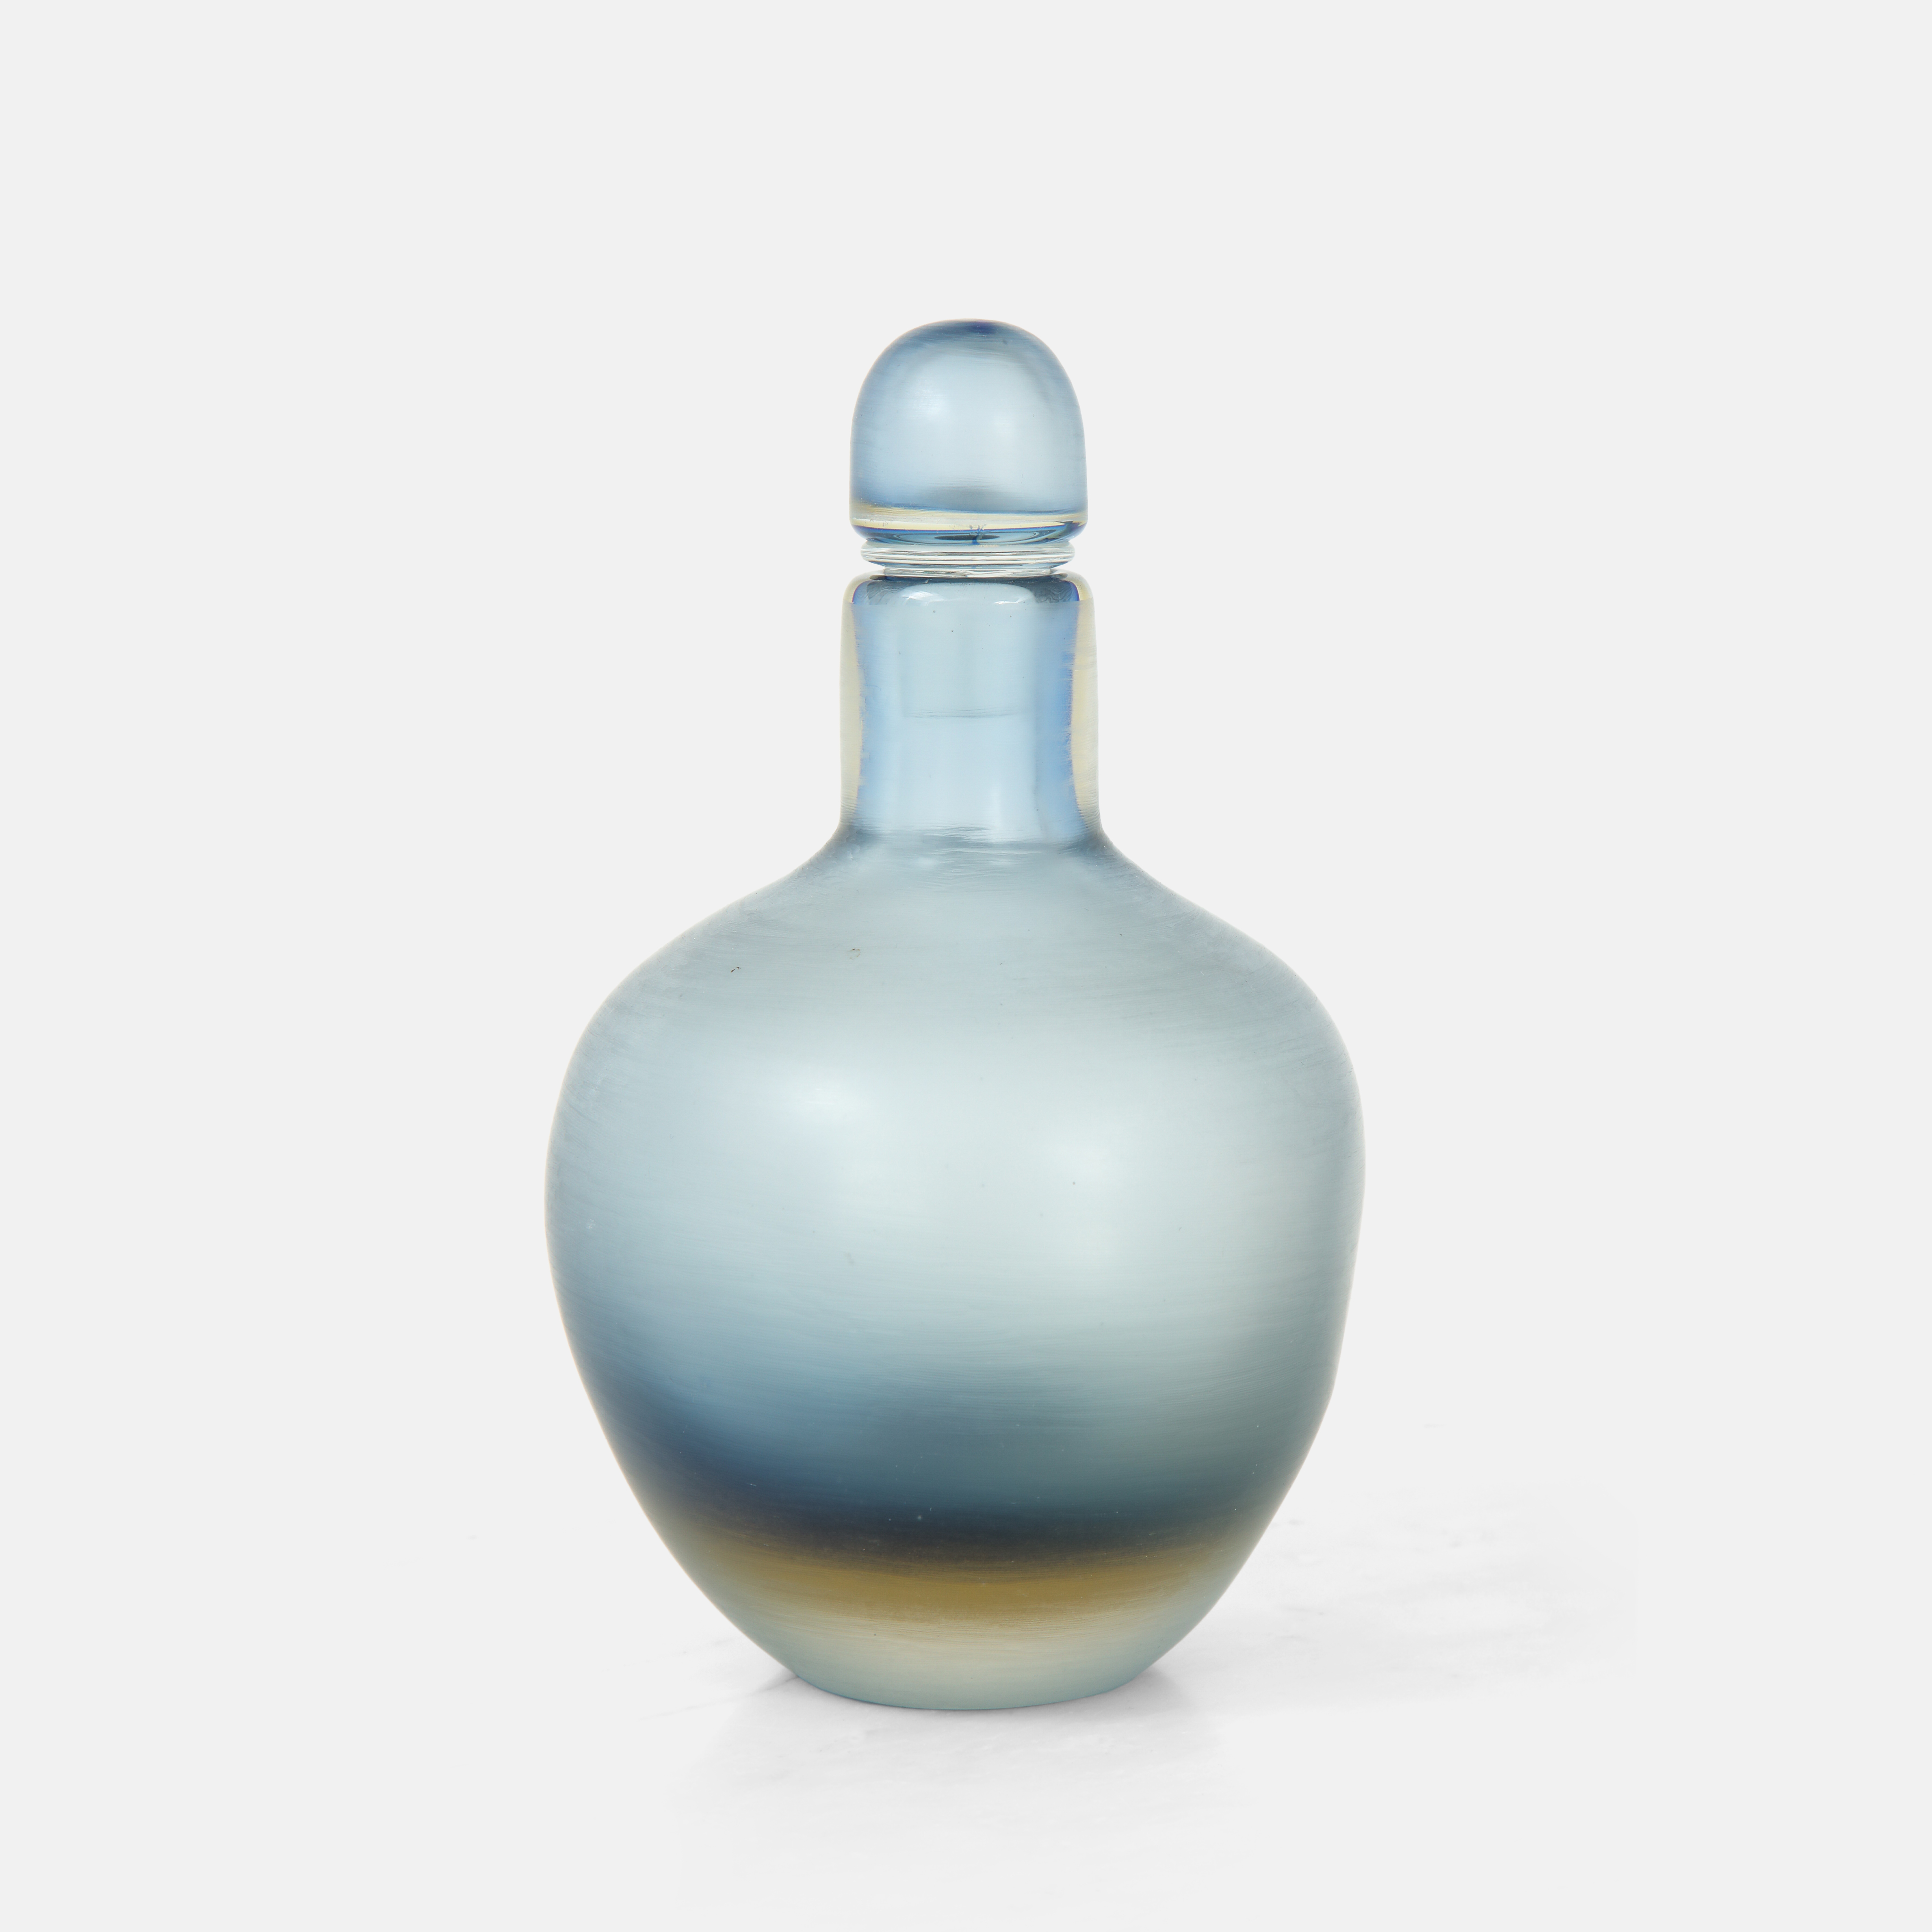 Inciso Bottle with Stopper by Paolo Venini for Venini & C. | soyun k.